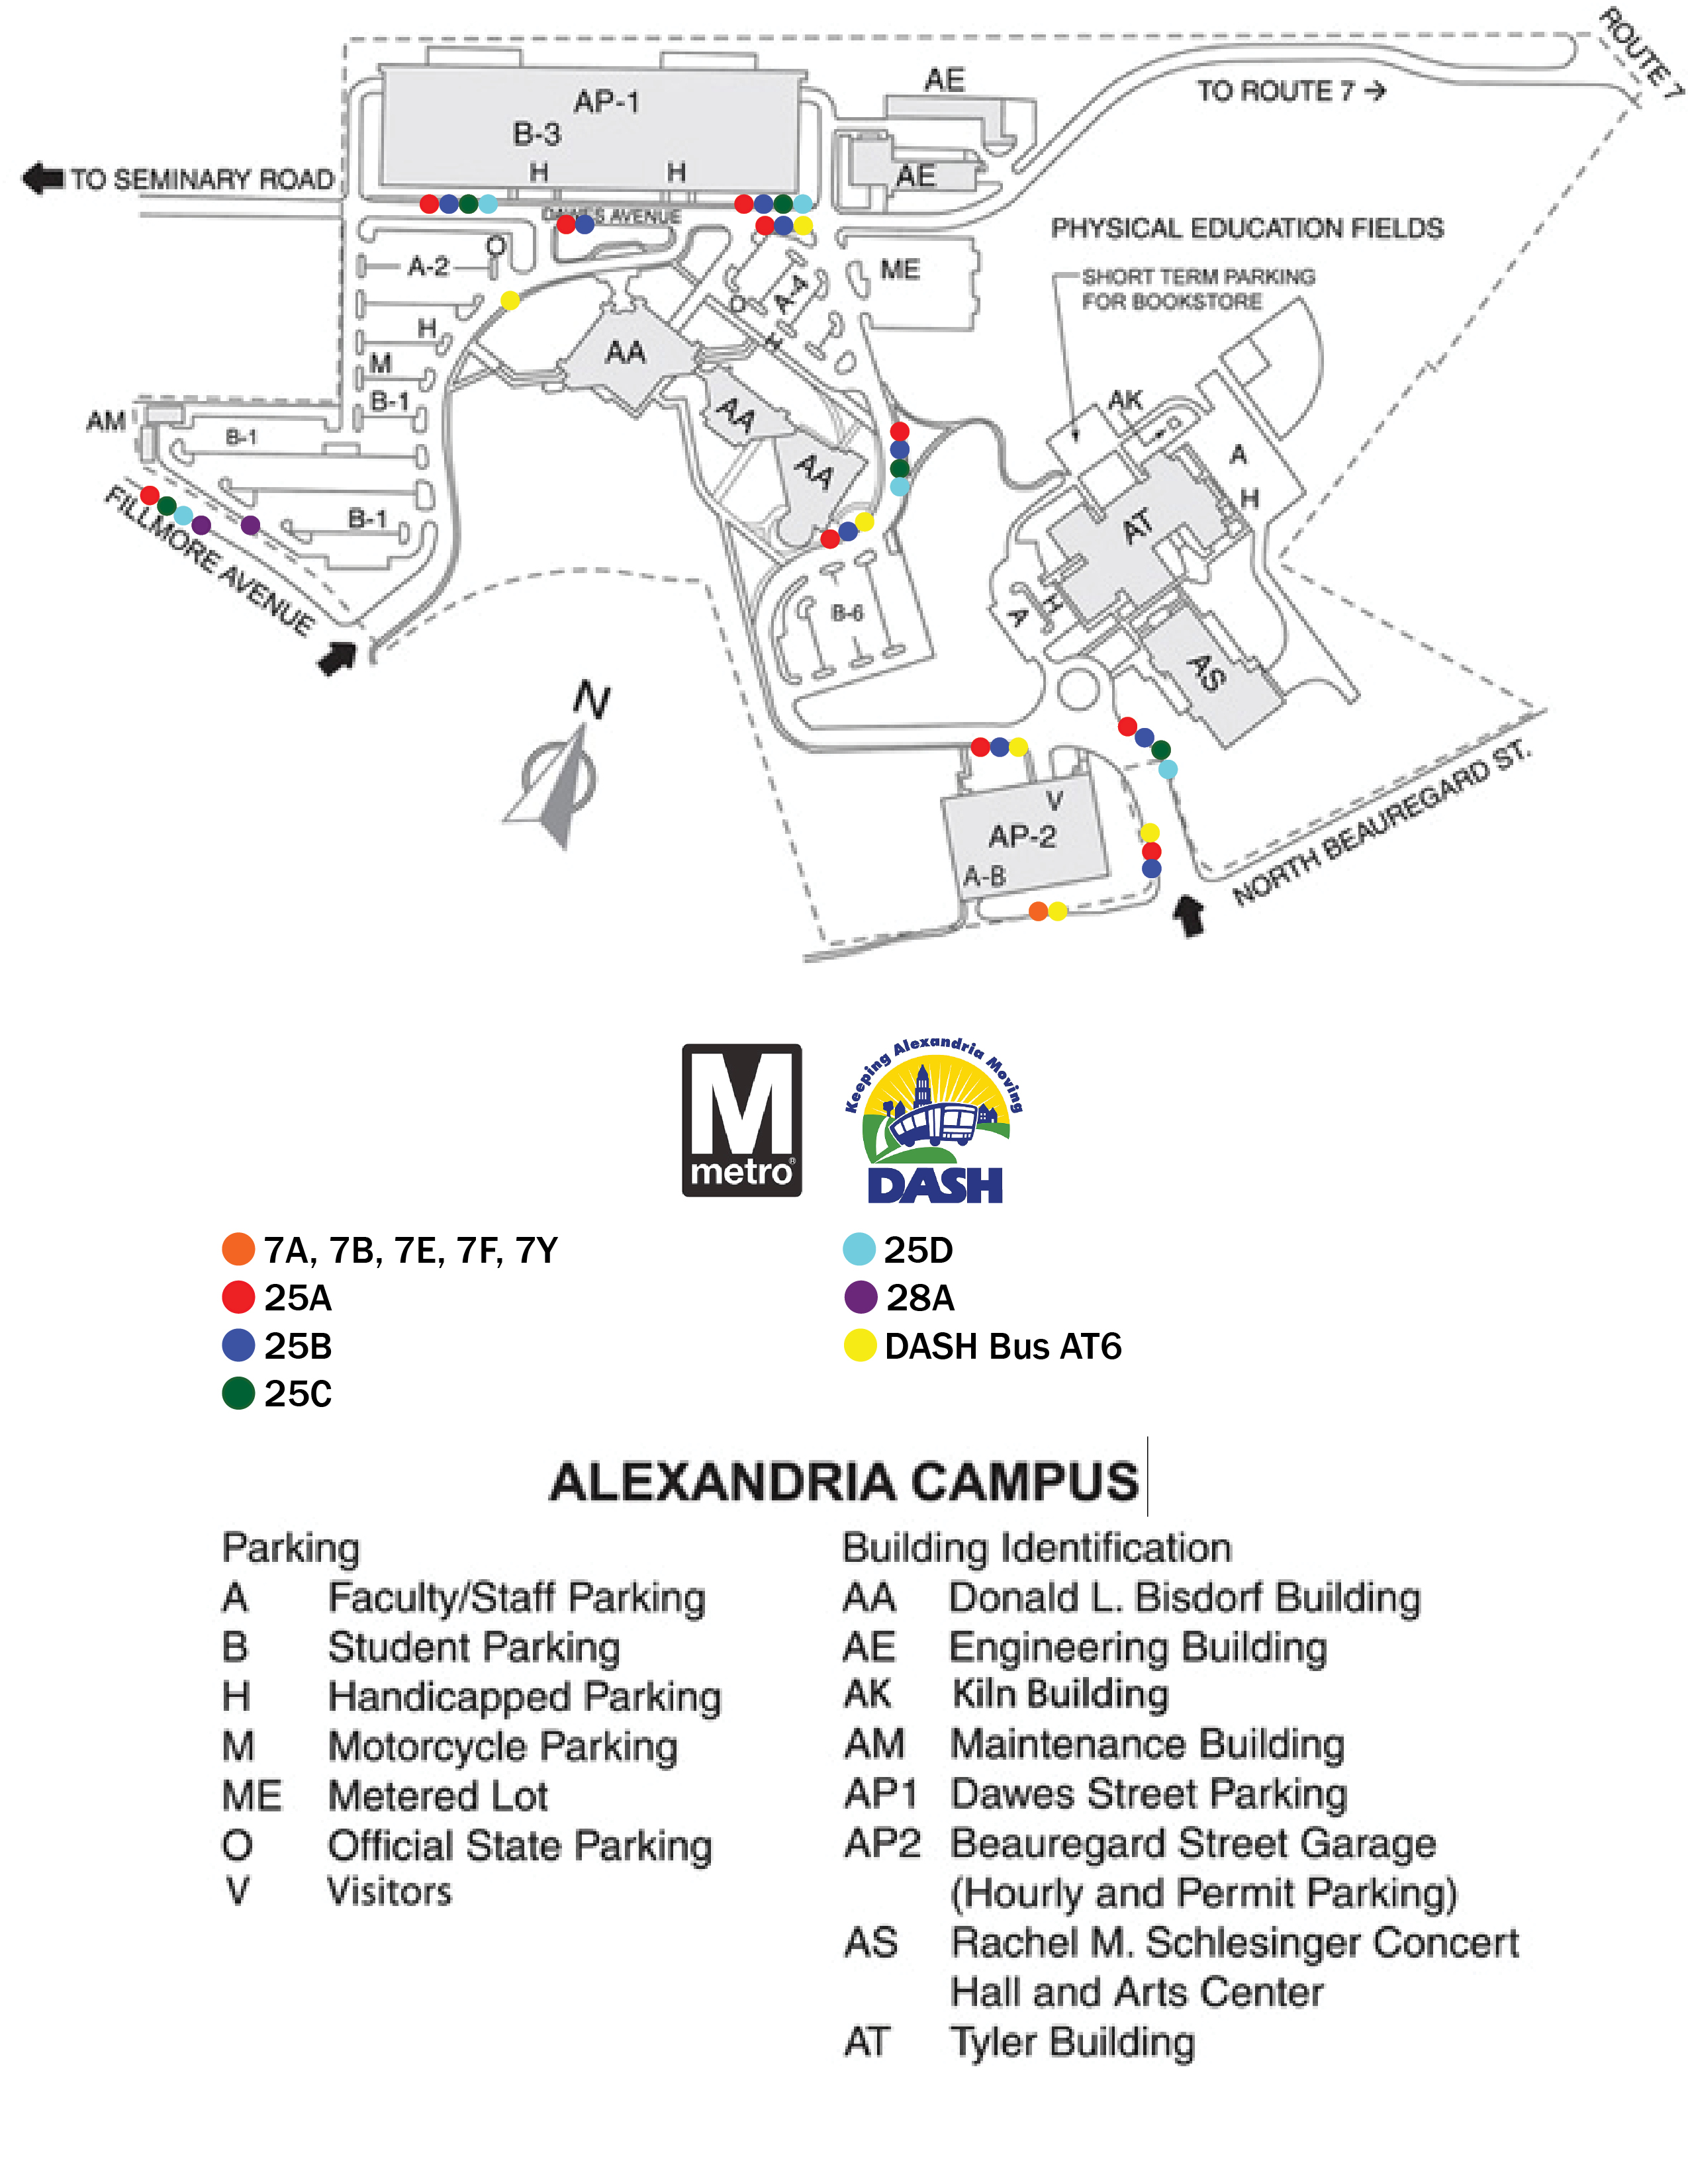 alexandria nova campus map Alexandria Campus Northern Virginia Community College alexandria nova campus map